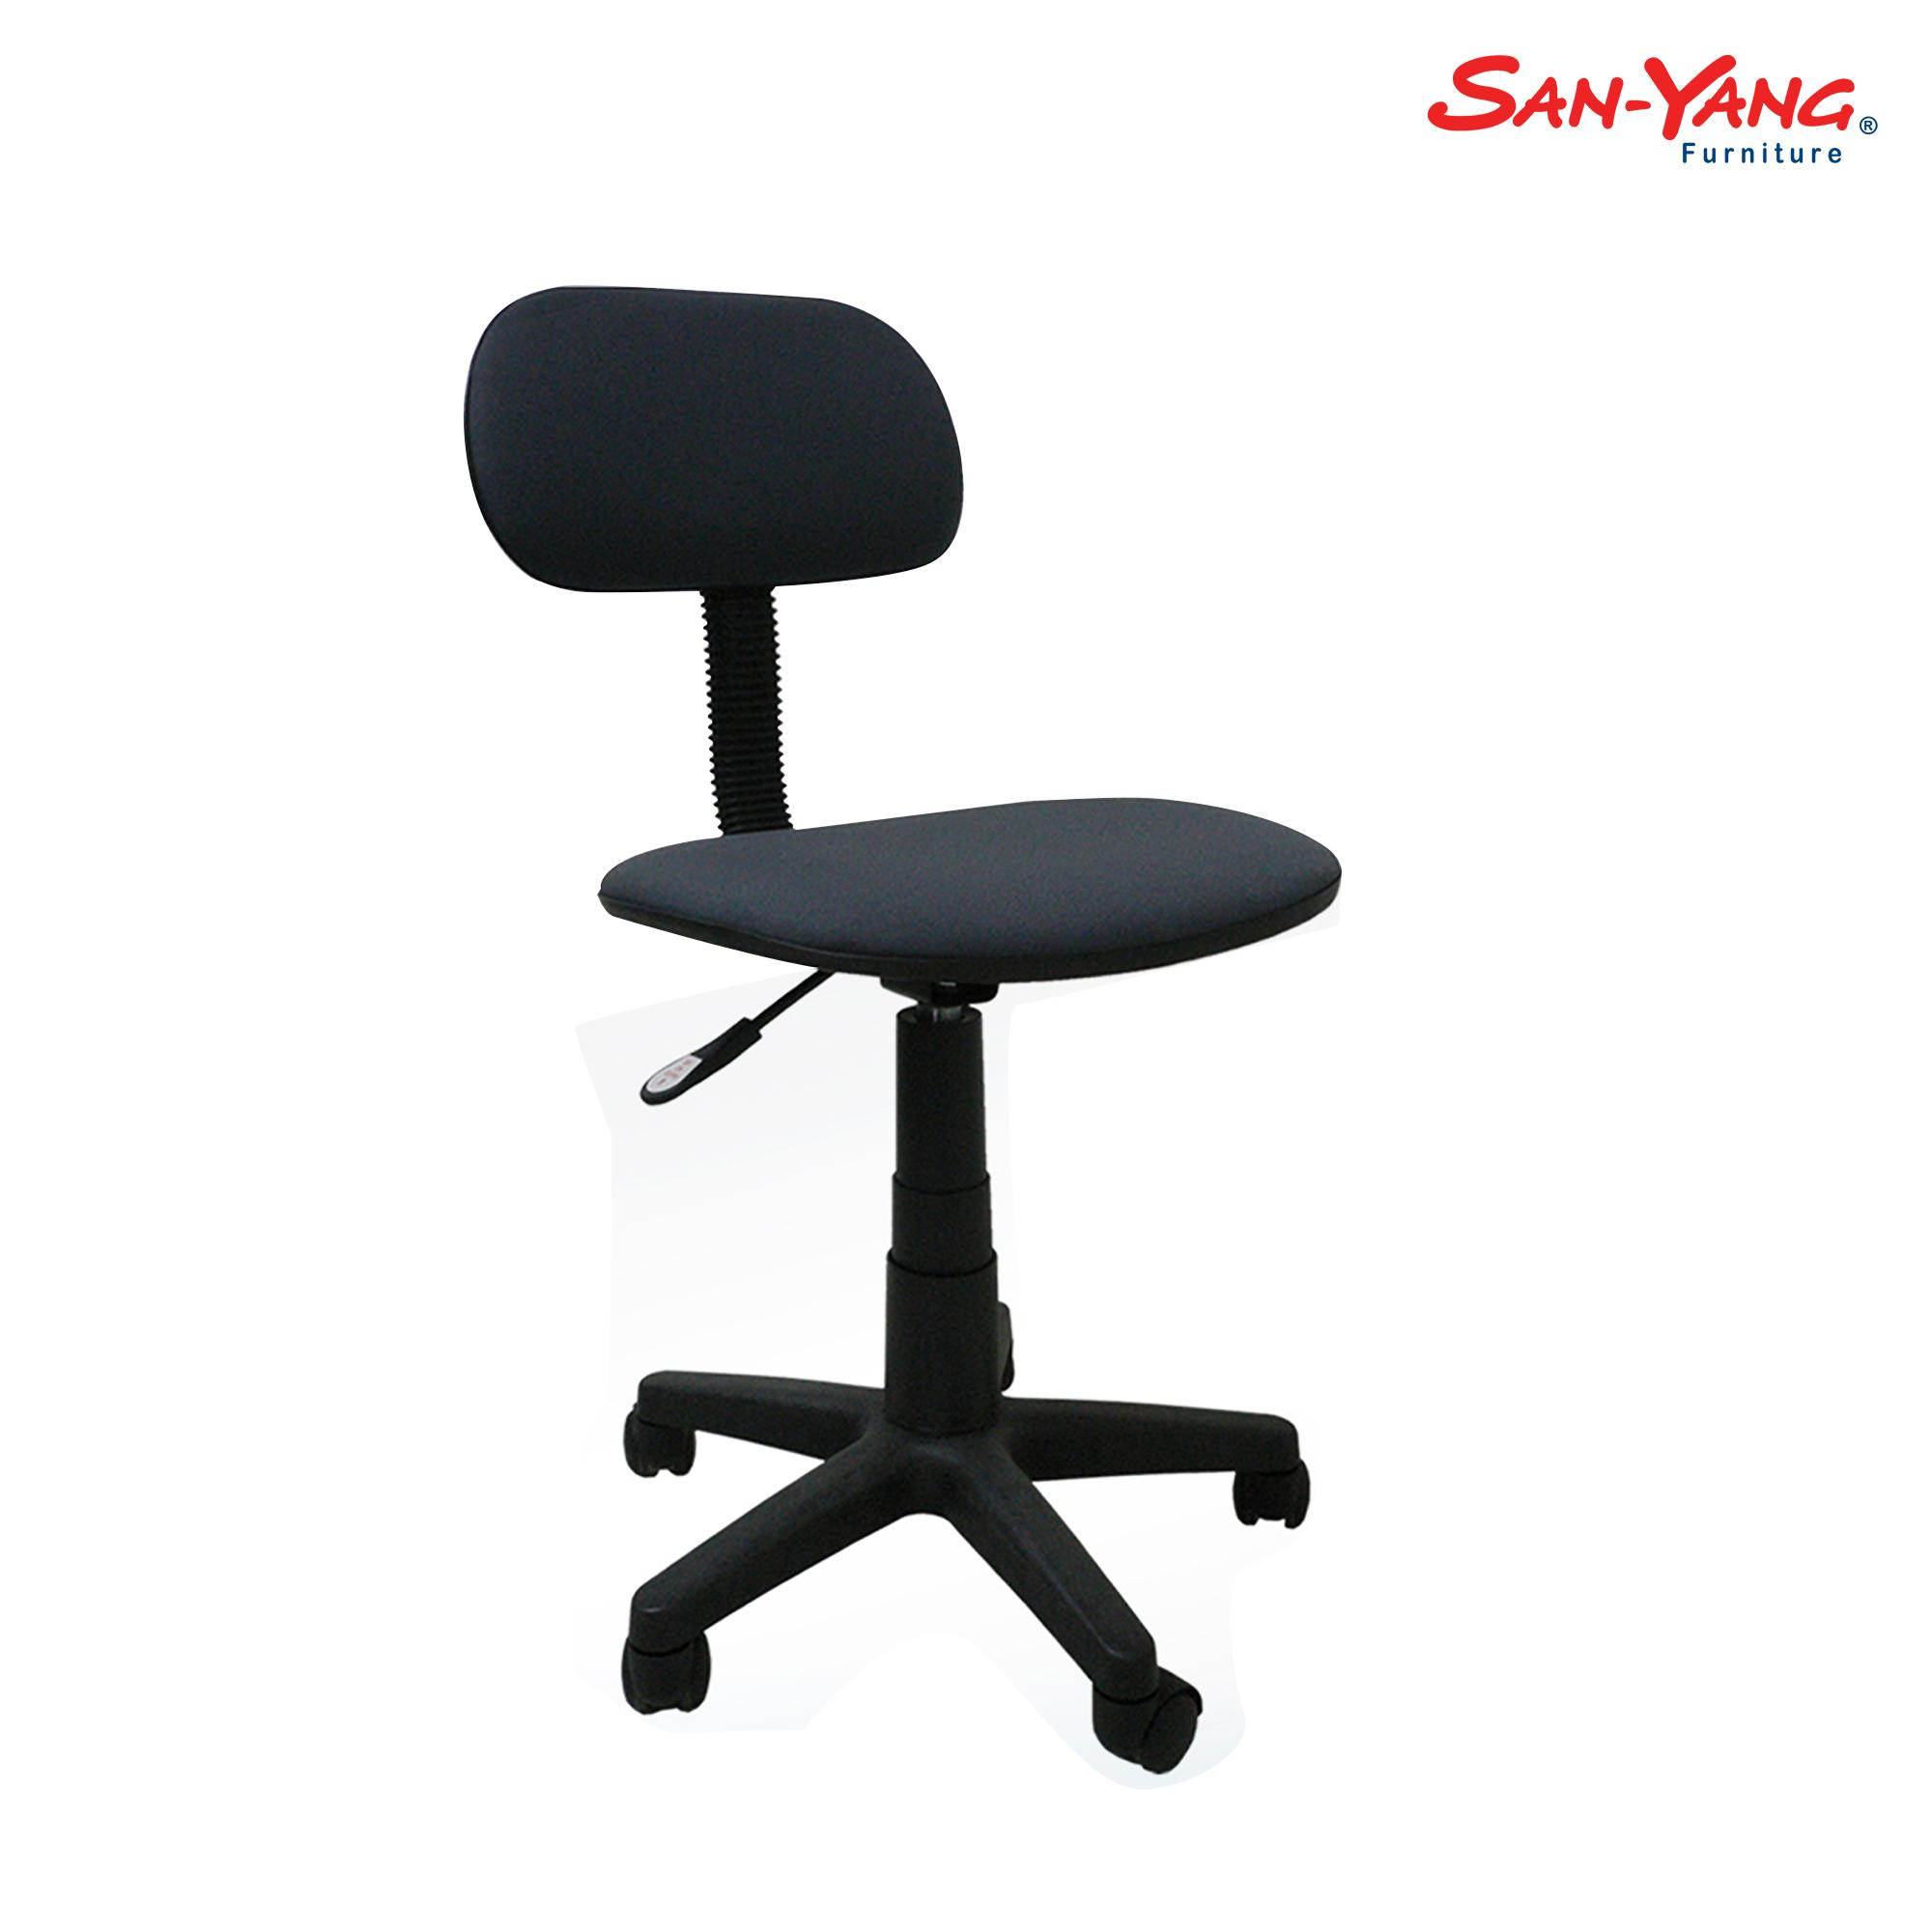 home office desk chairs chic slim. San-Yang Clerical Chair FOC621G Home Office Desk Chairs Chic Slim